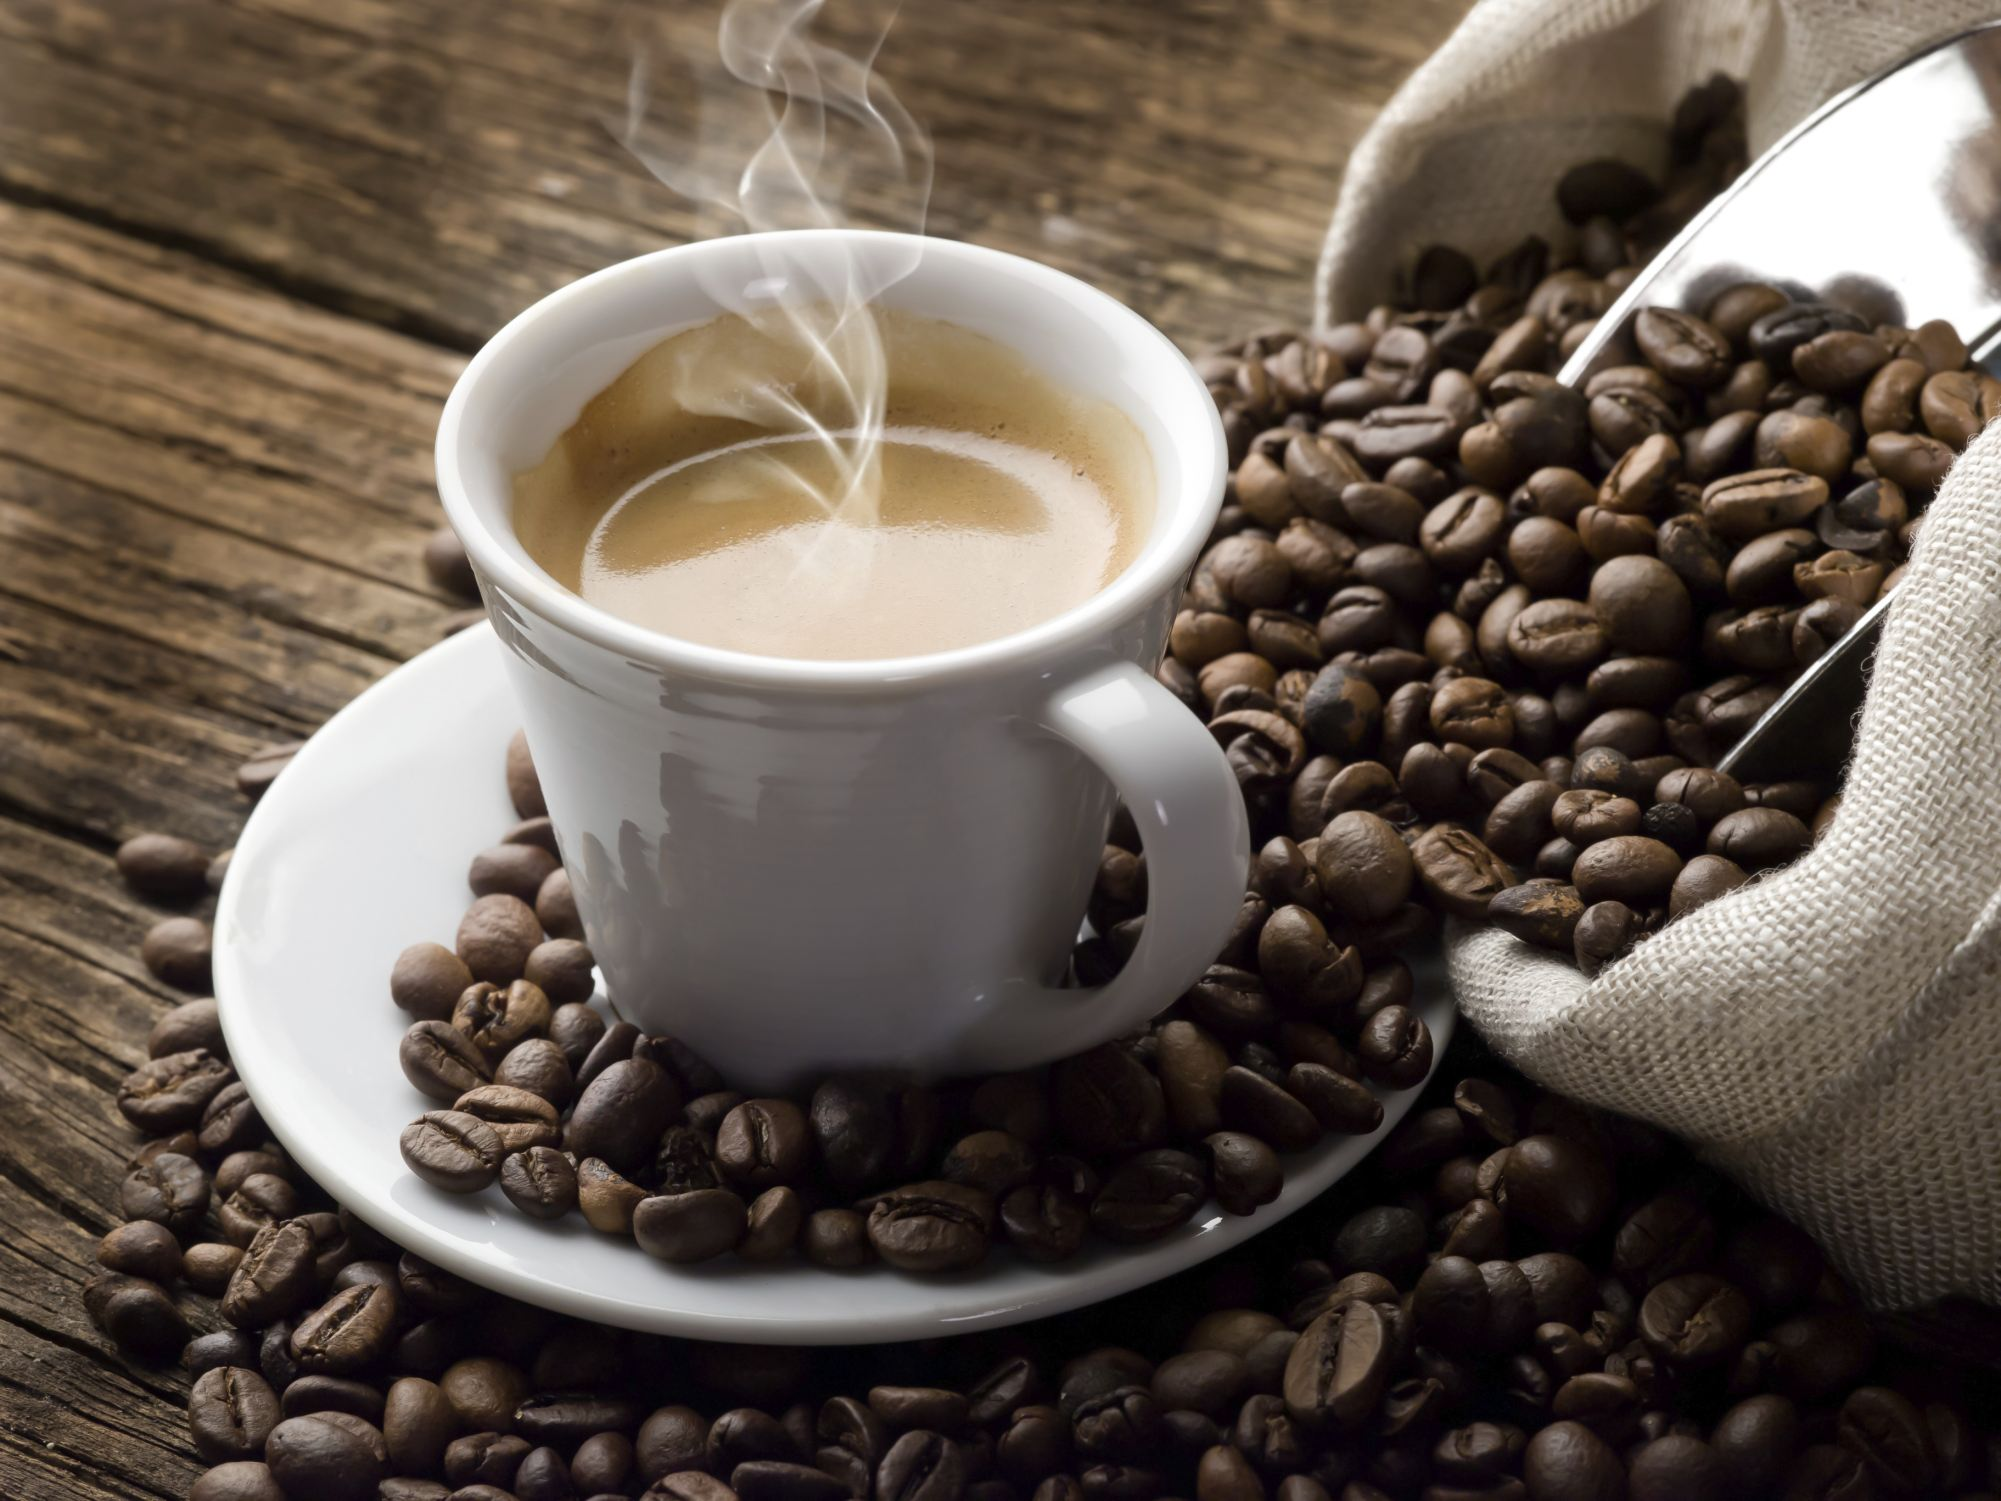 14 Things About Coffee You Didn't Know Before